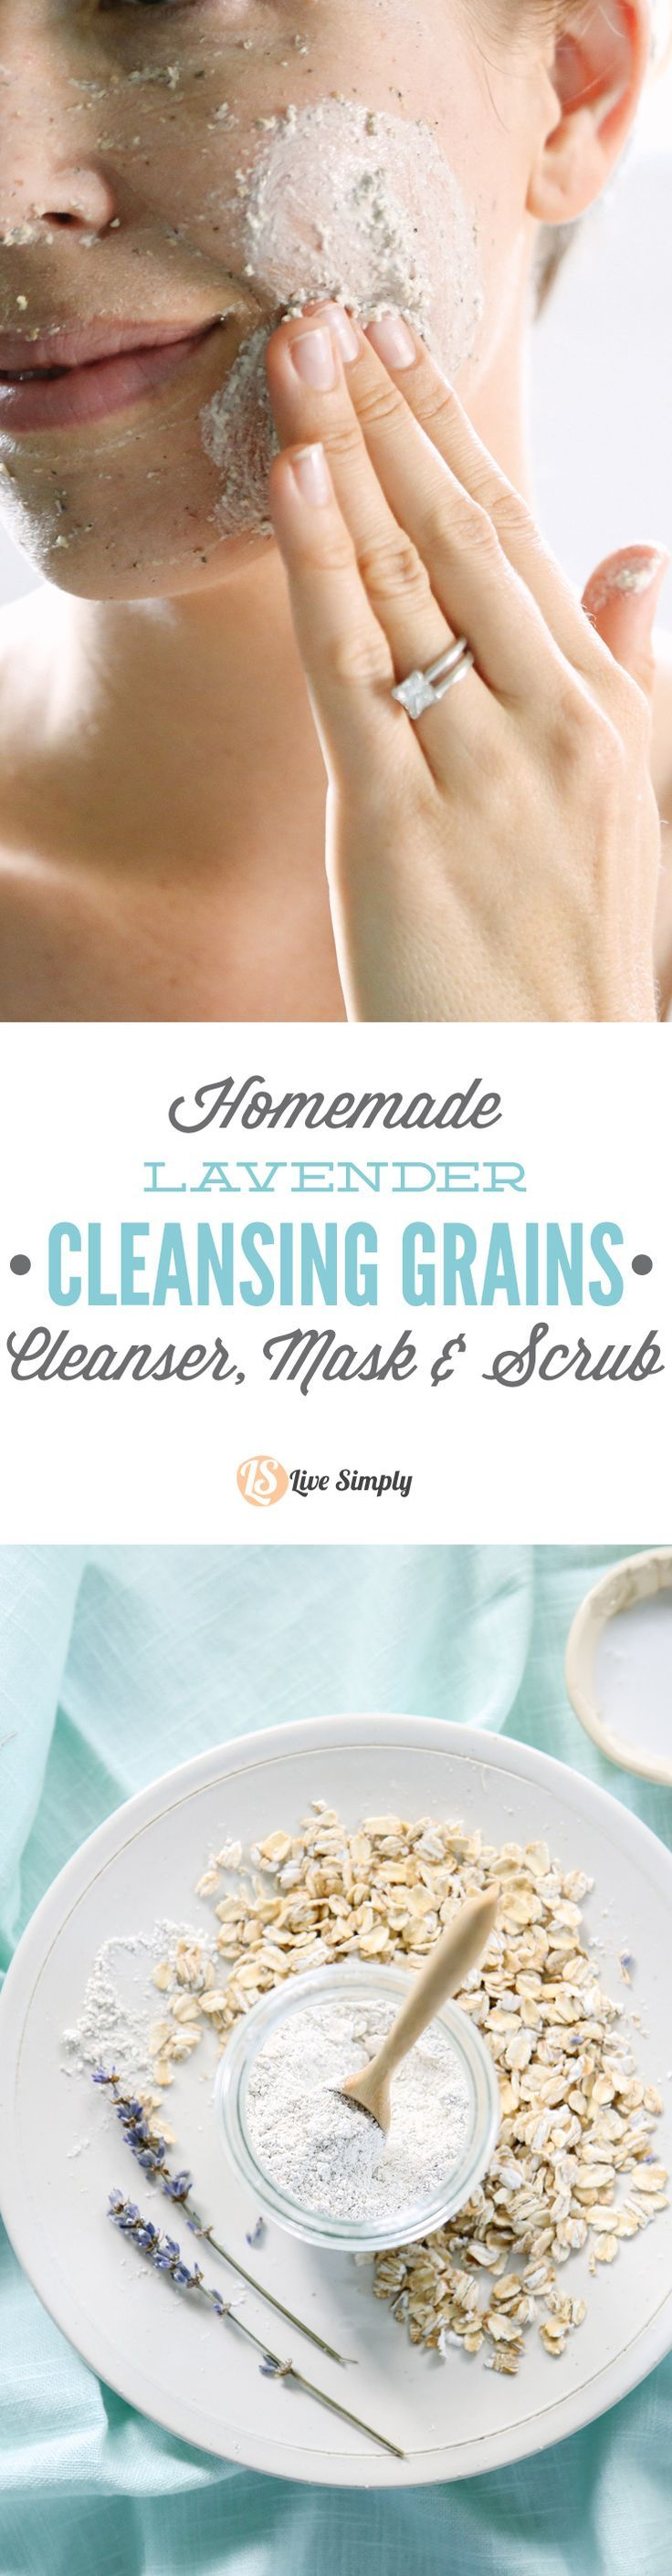 Love this! A 3-in-1 facial cleanser recipe that's easy to make and gentle on the skin.